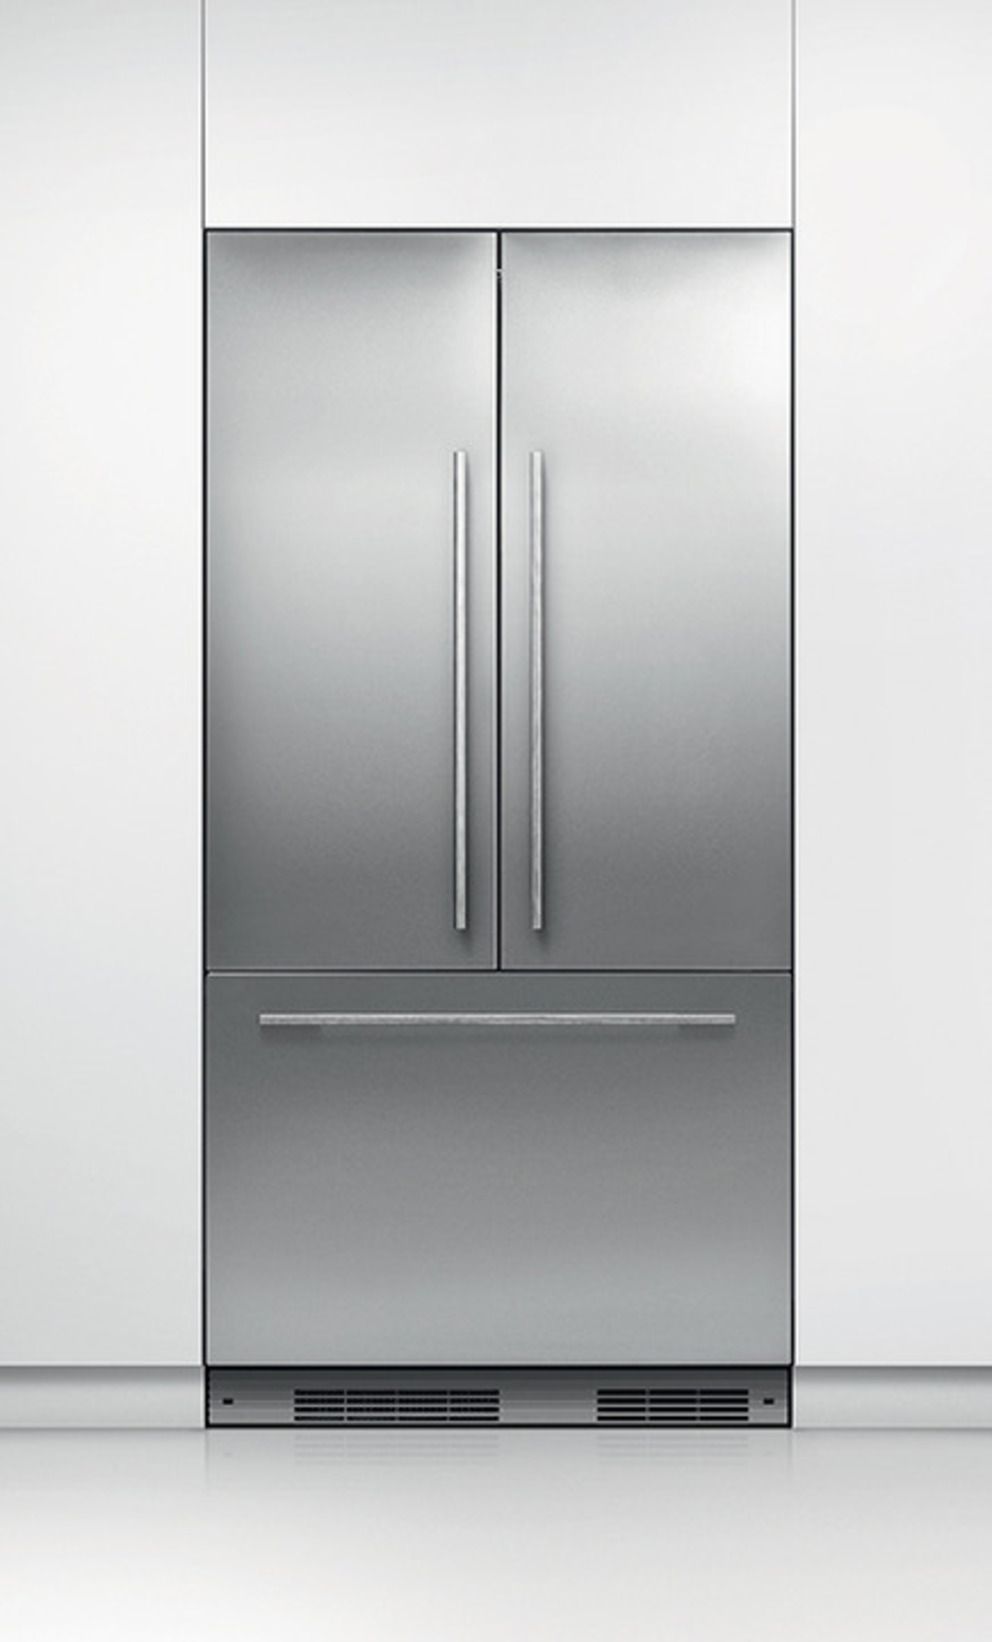 Fridges Fisher&Paykel RS36A72J1 + RD3672 (72'' F&P)